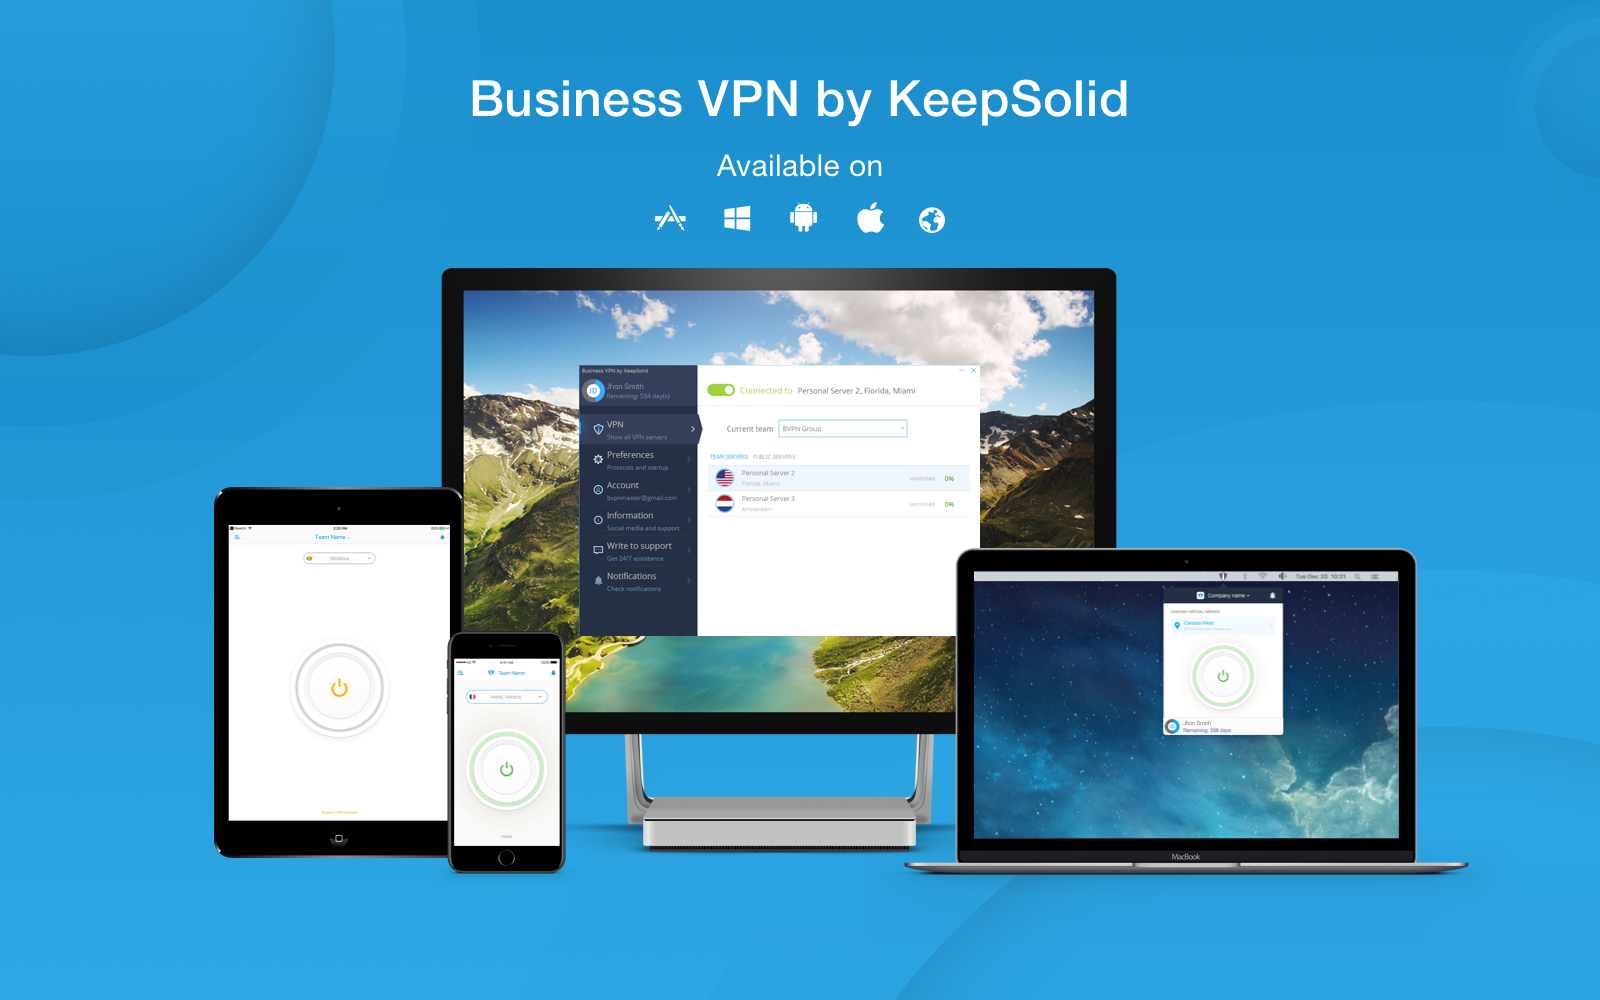 Business VPN by KeepSolid Demo - Business VPN by KeepSolid.png